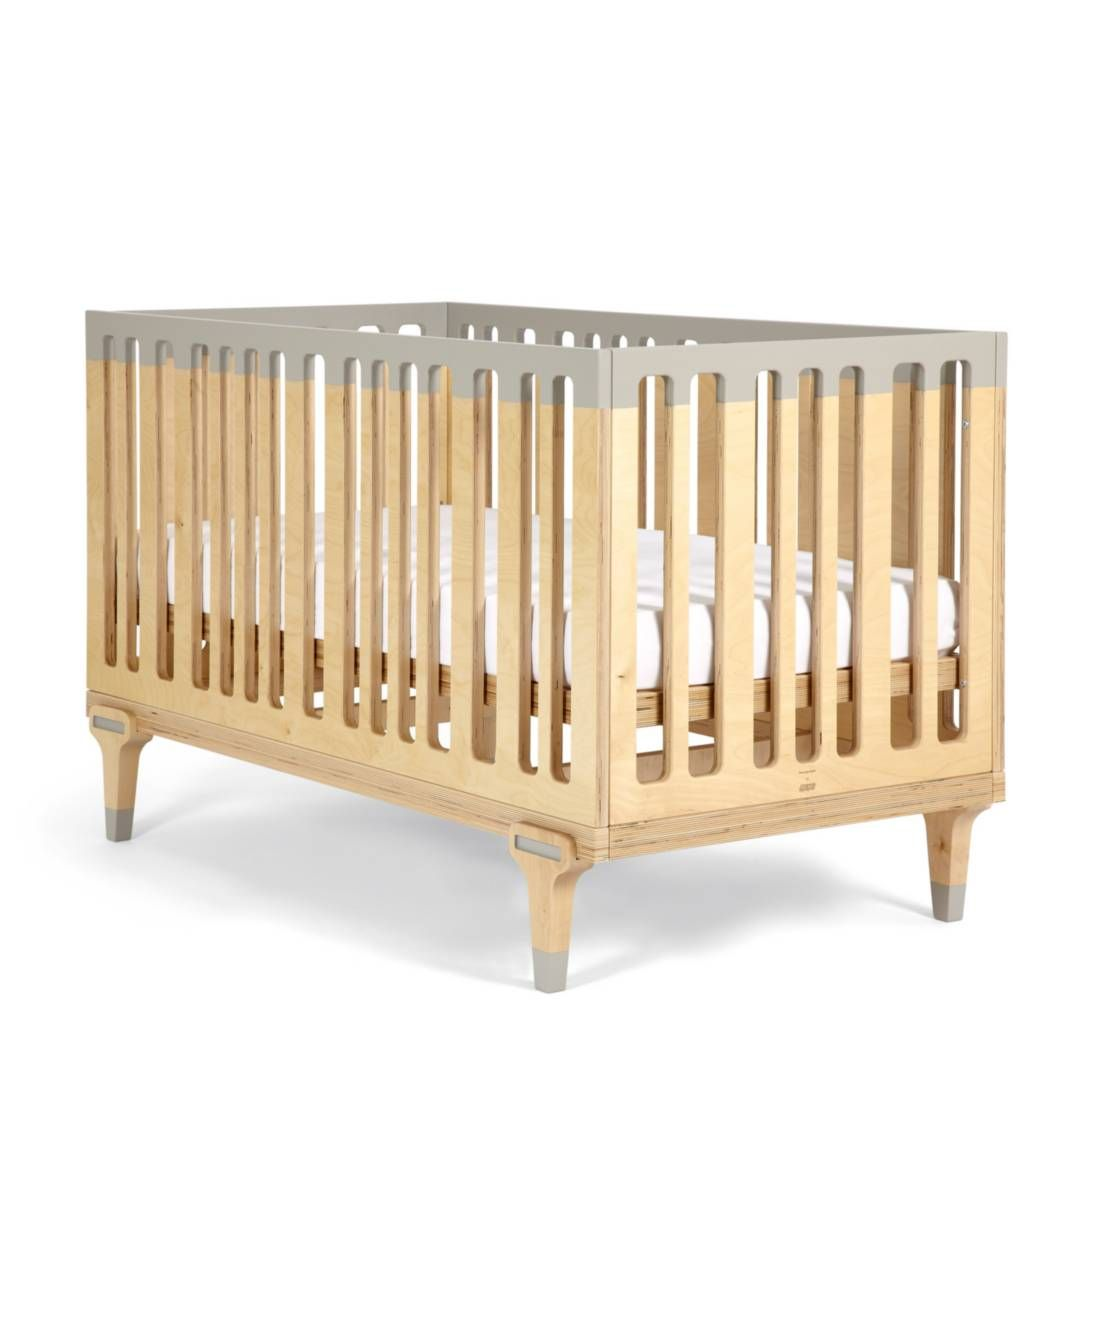 Bunny Clyde Convertible Cot Toddler Bed 3 In 1 Birch Wood